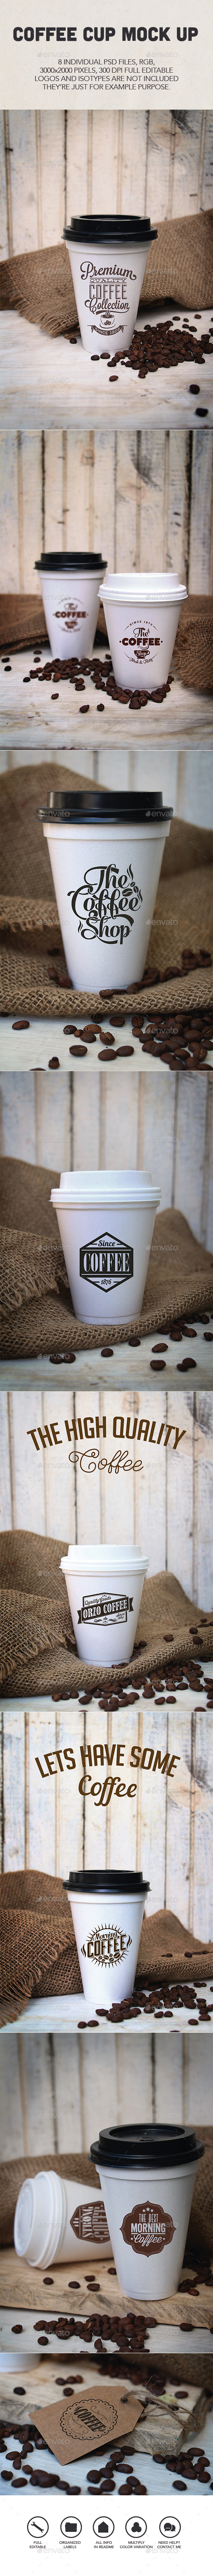 Coffee Cup Logo Mock Ups - Product Mock-Ups Graphics